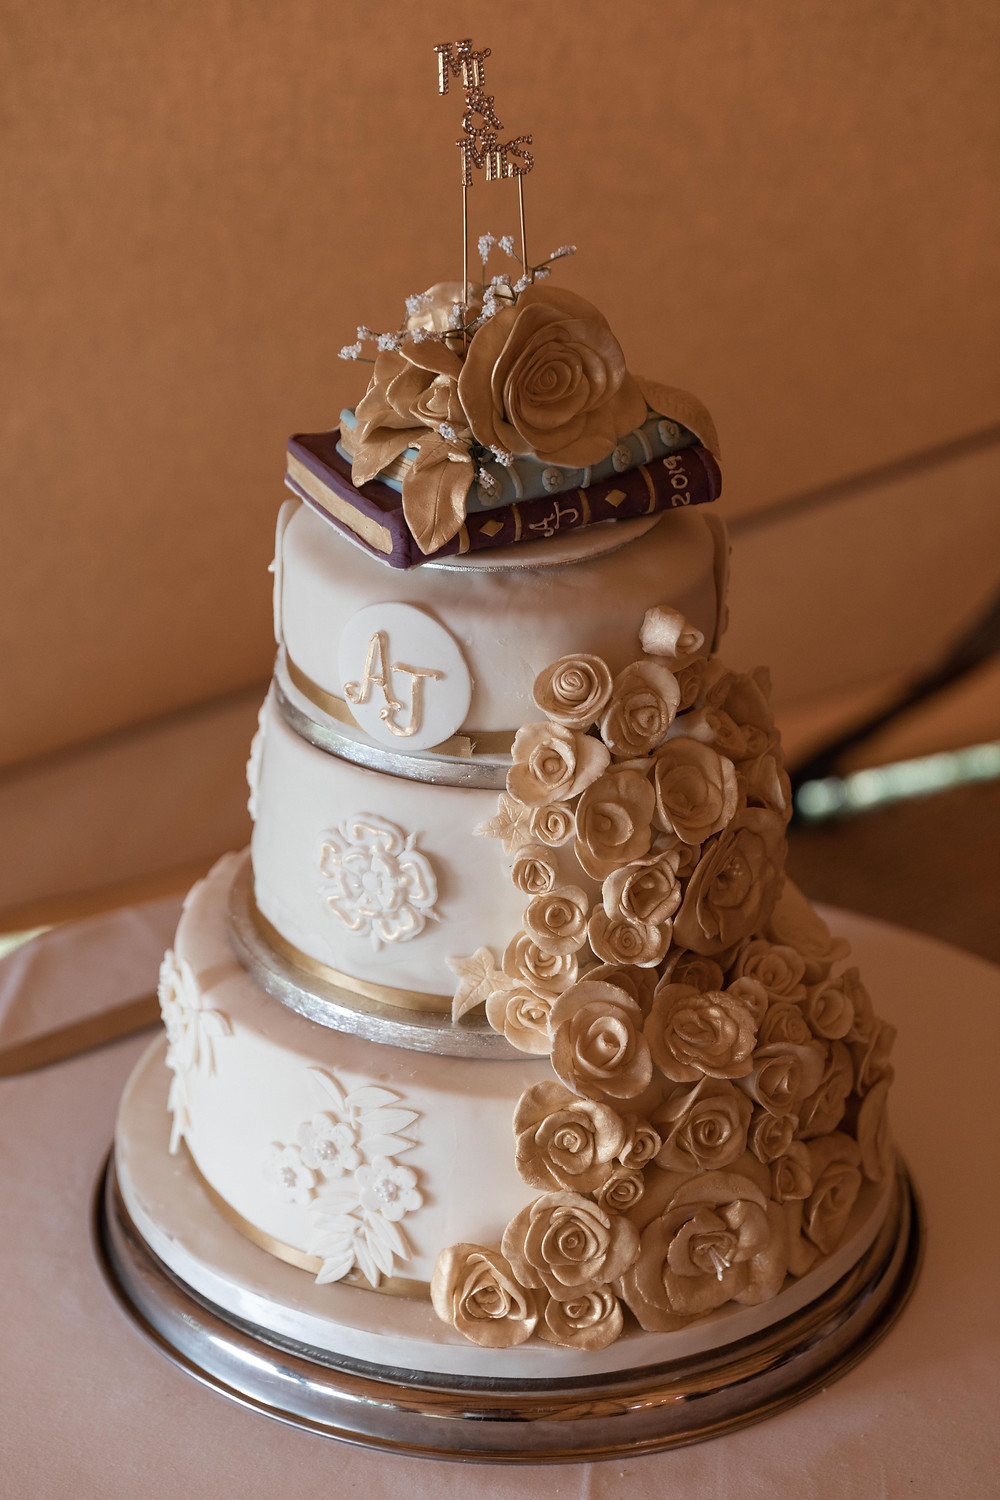 The wedding cake by Jack Cook photographer